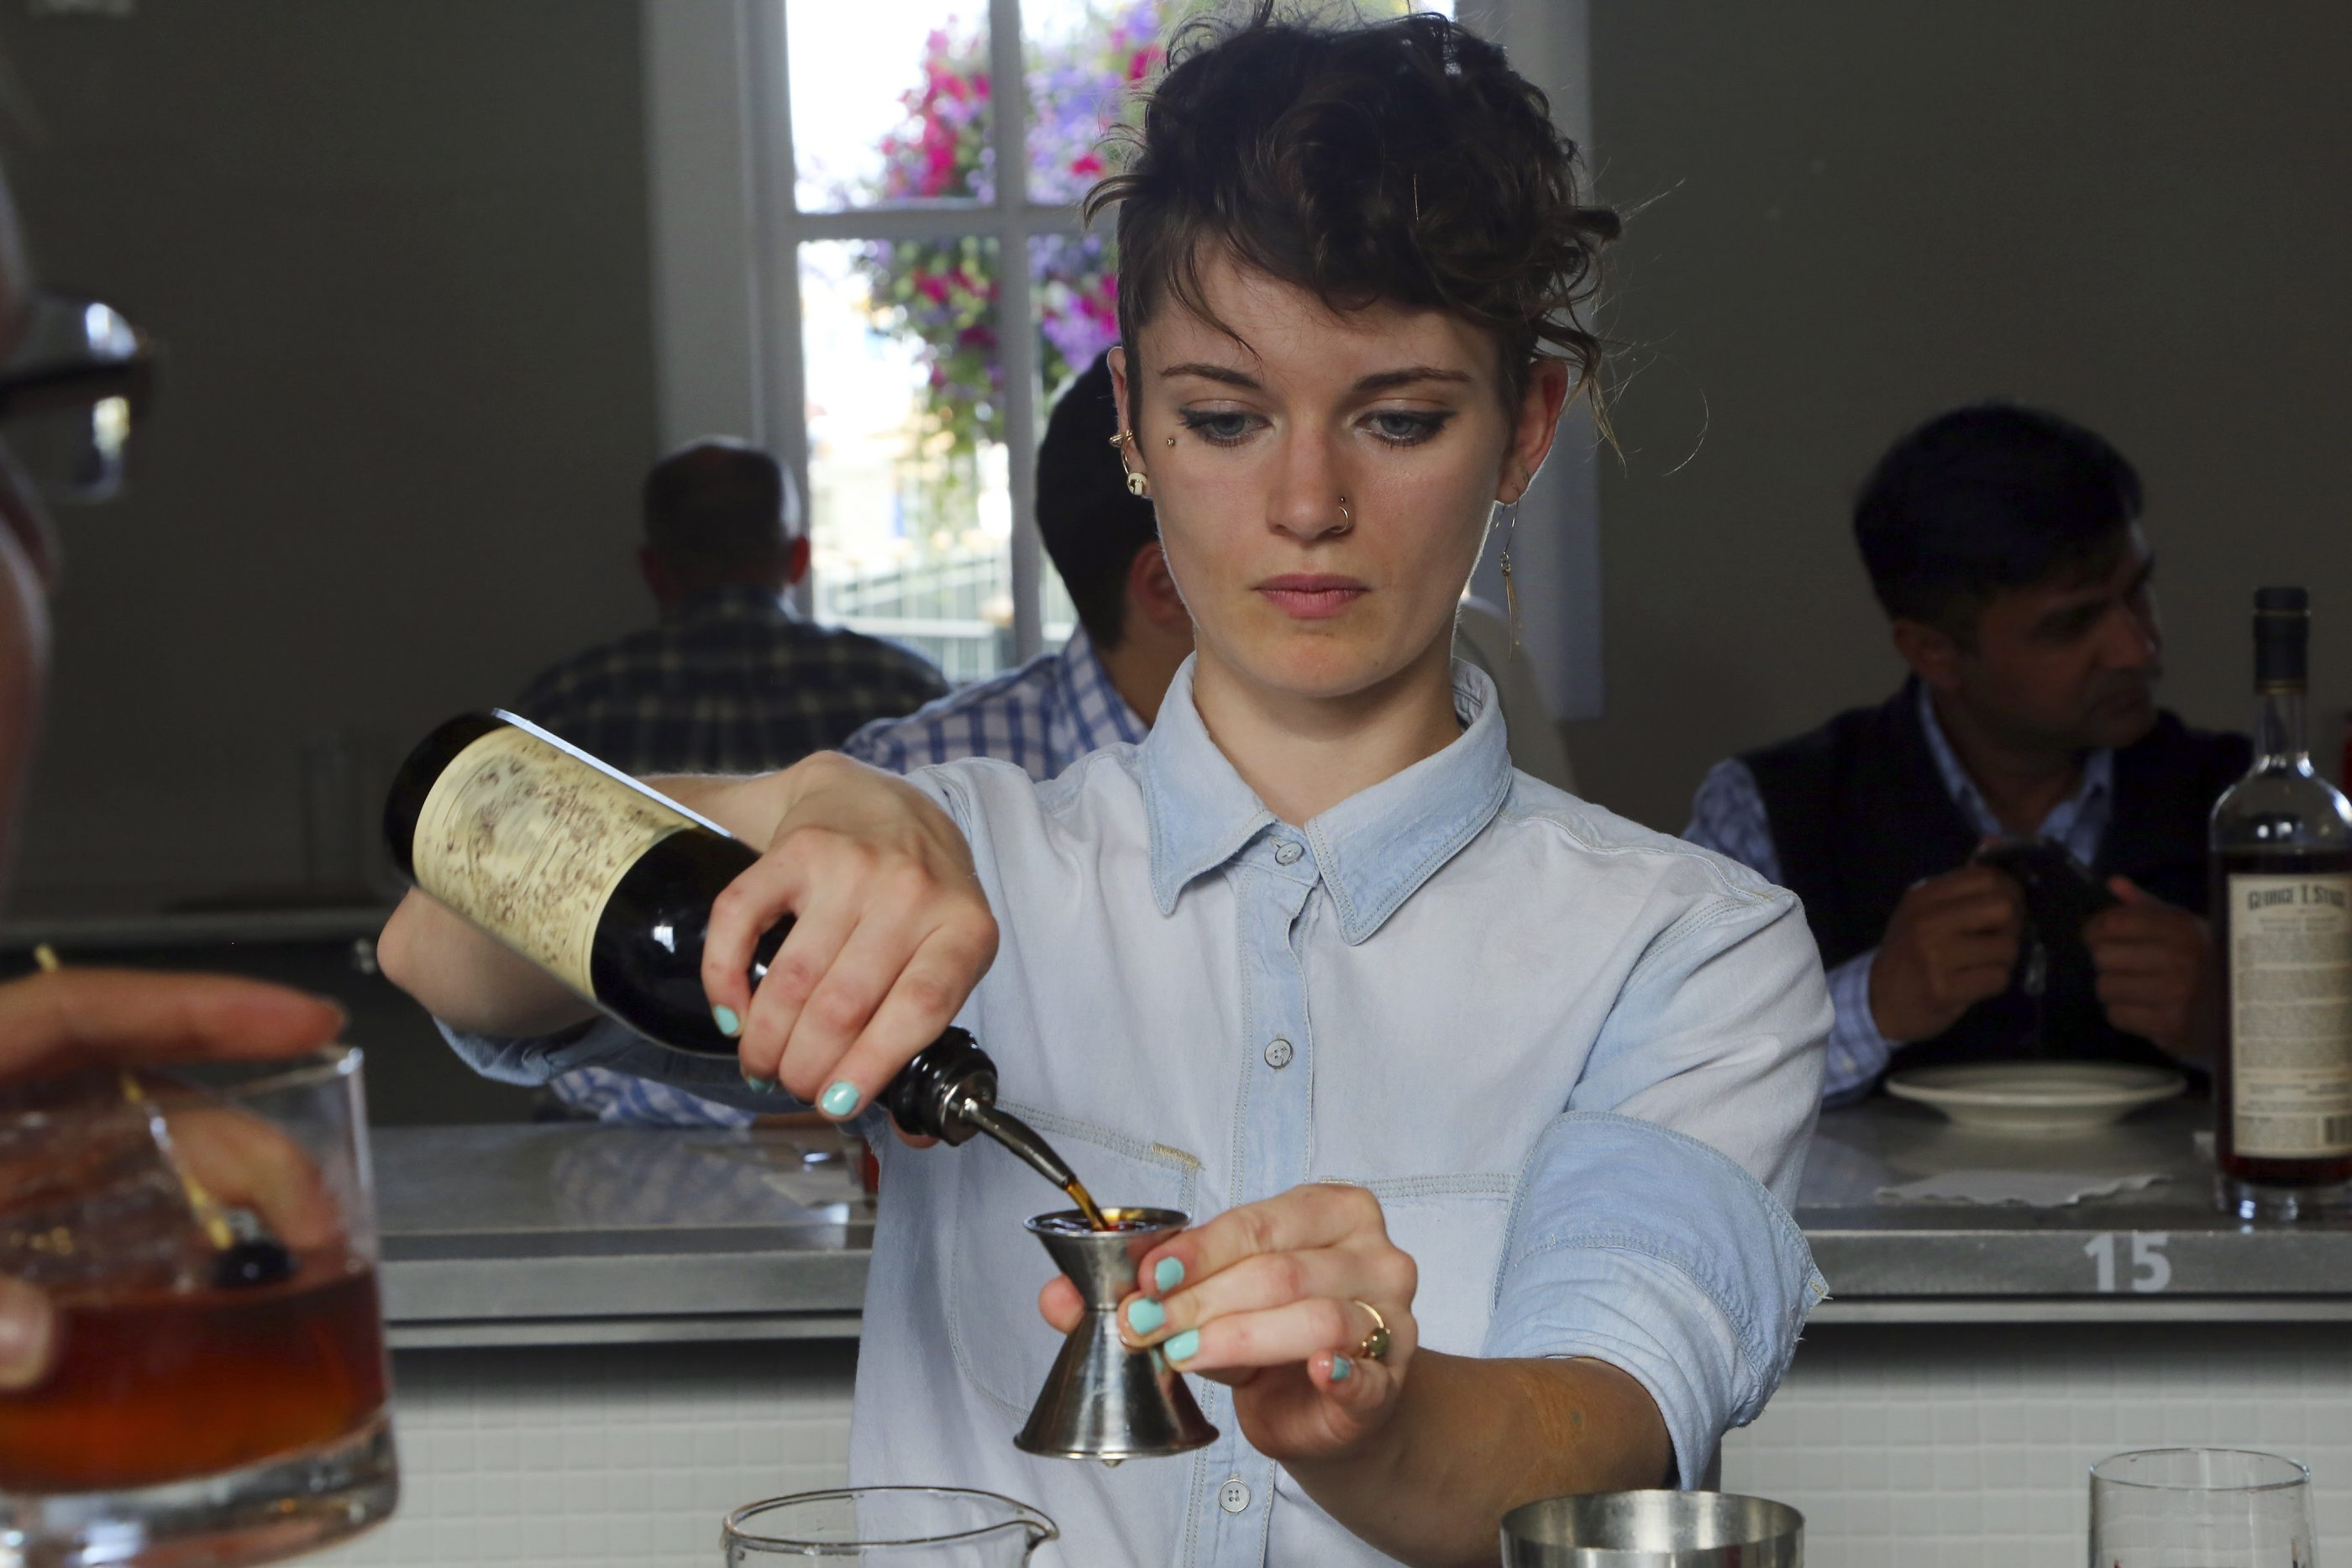 Erin Rose makes a whiskey drink at Hard Water, a whiskey bar, in San Francisco, July 2, 2014. The United States' growing thirst for rare, vintage and high end whiskeys has spawned a niche of whiskey bars with massive collections of hard-to-find spirits. (Jim Wilson/The New York Times)